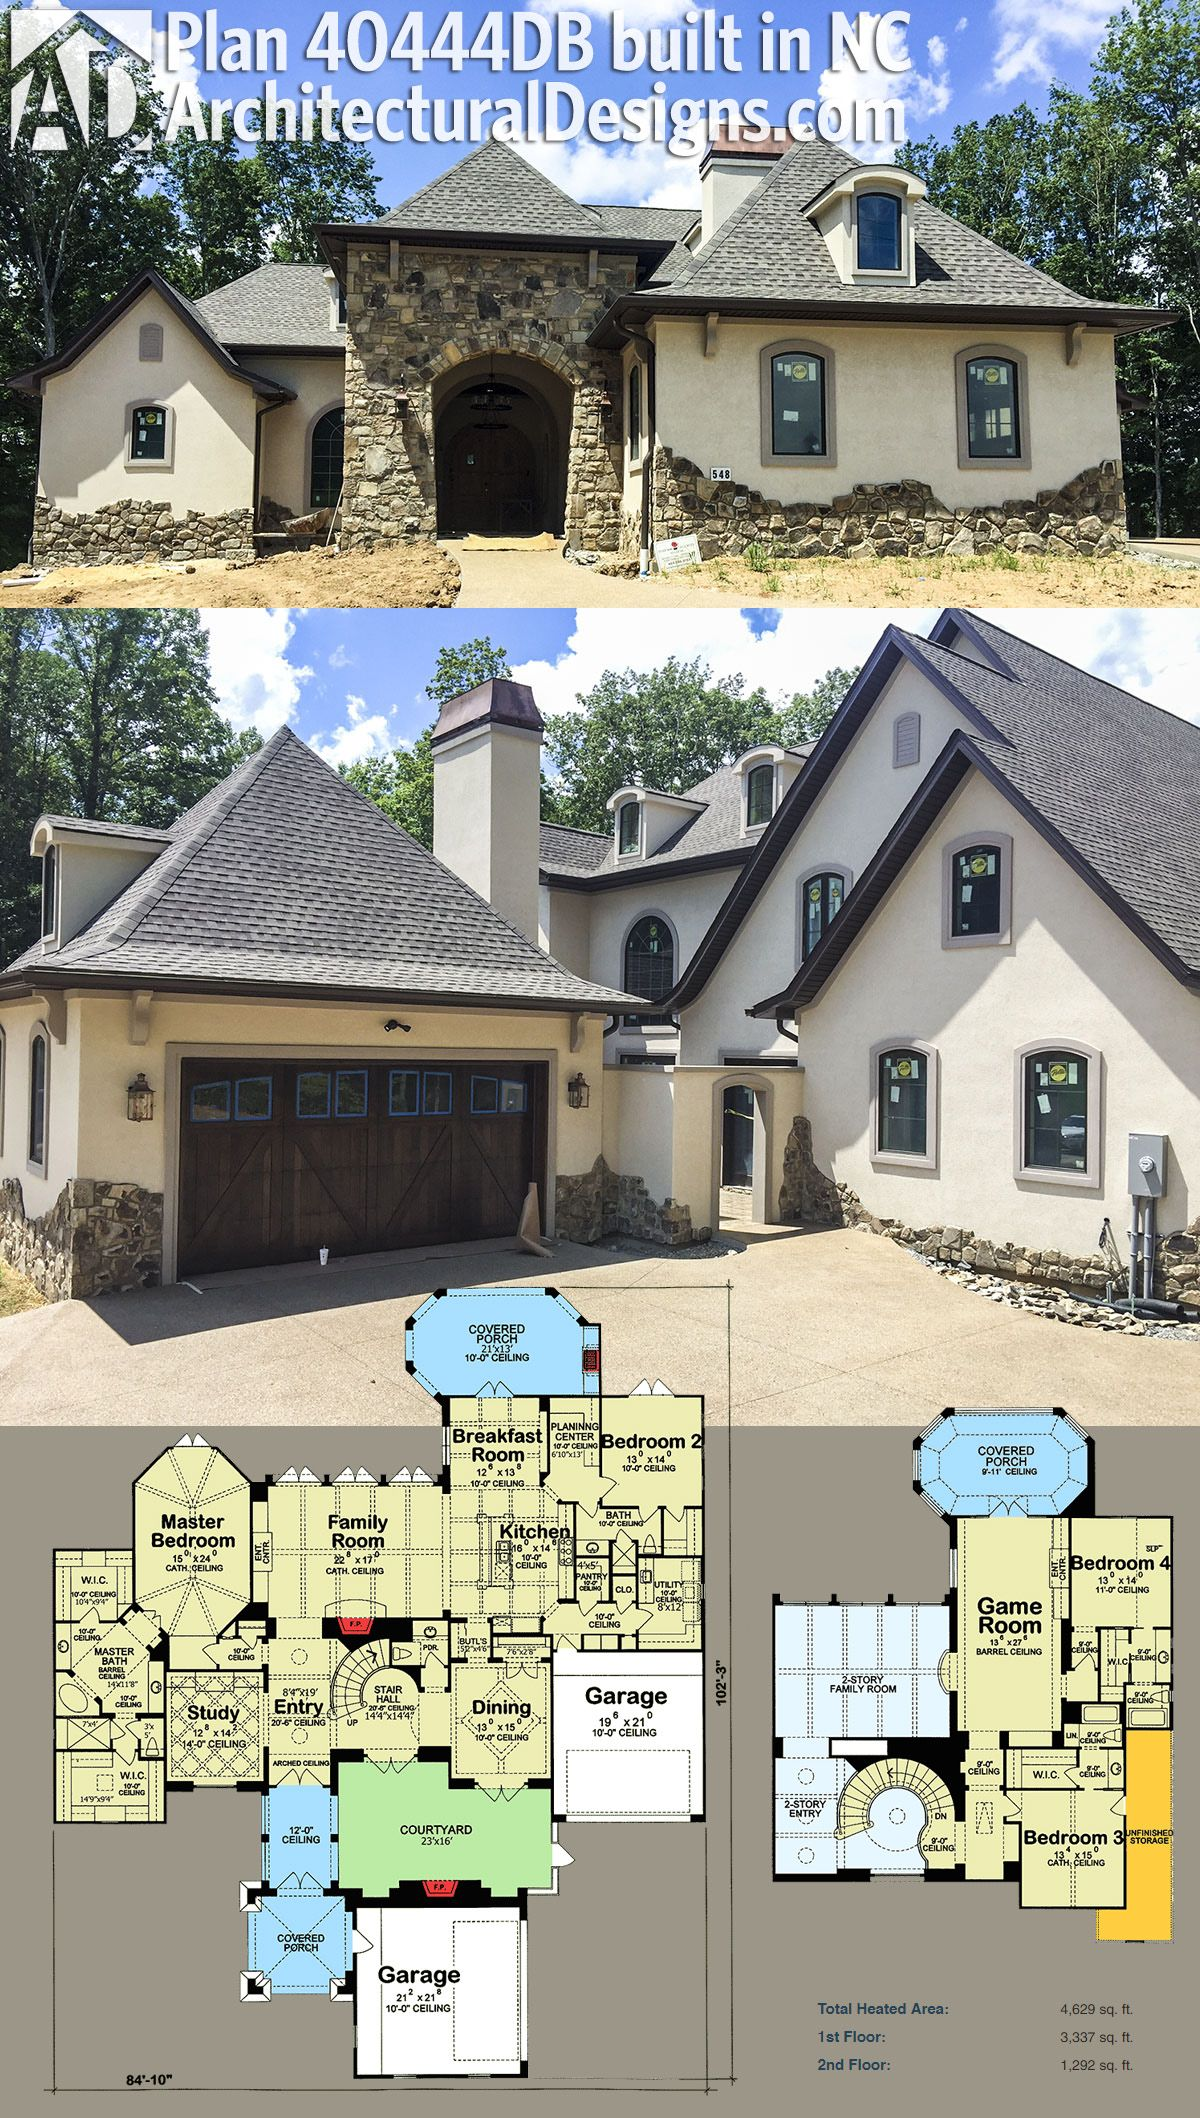 Our Client Built And Modified Architectural Designs House Plan 40444DB In  Tennessee With An Innovative Stucco